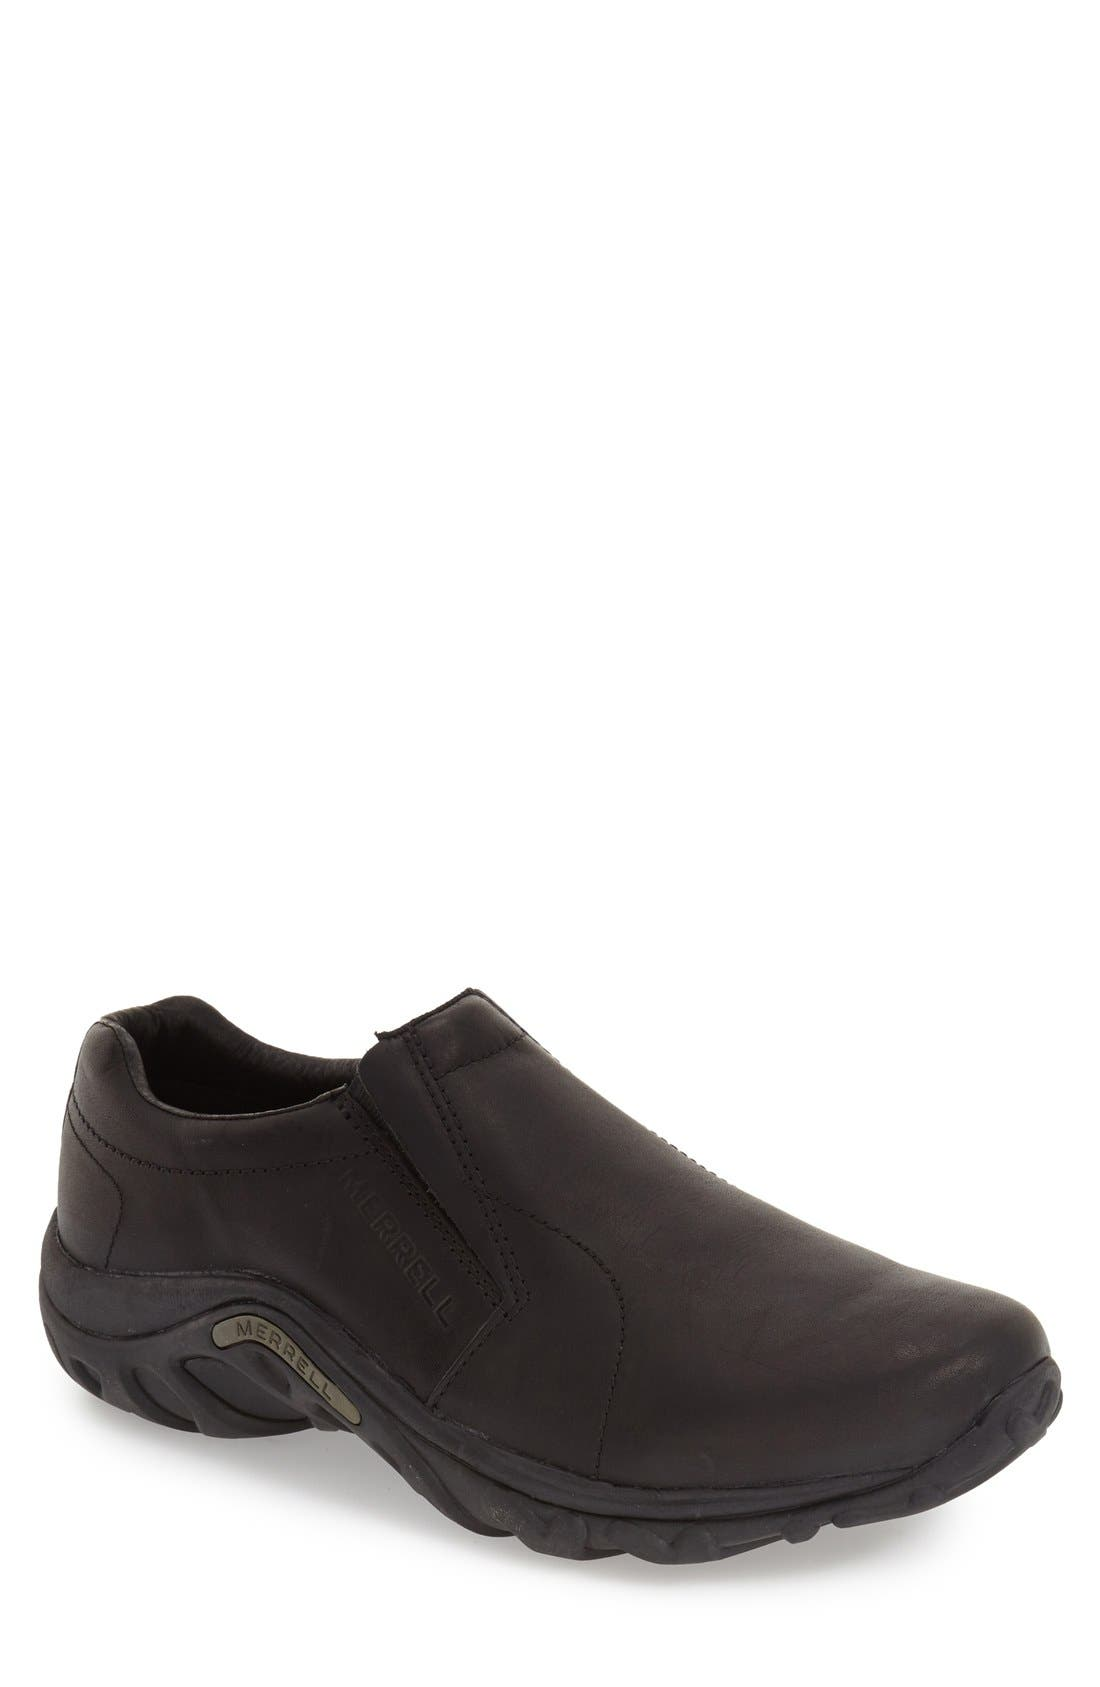 'Jungle Moc' Leather Athletic Slip-On,                         Main,                         color, Black